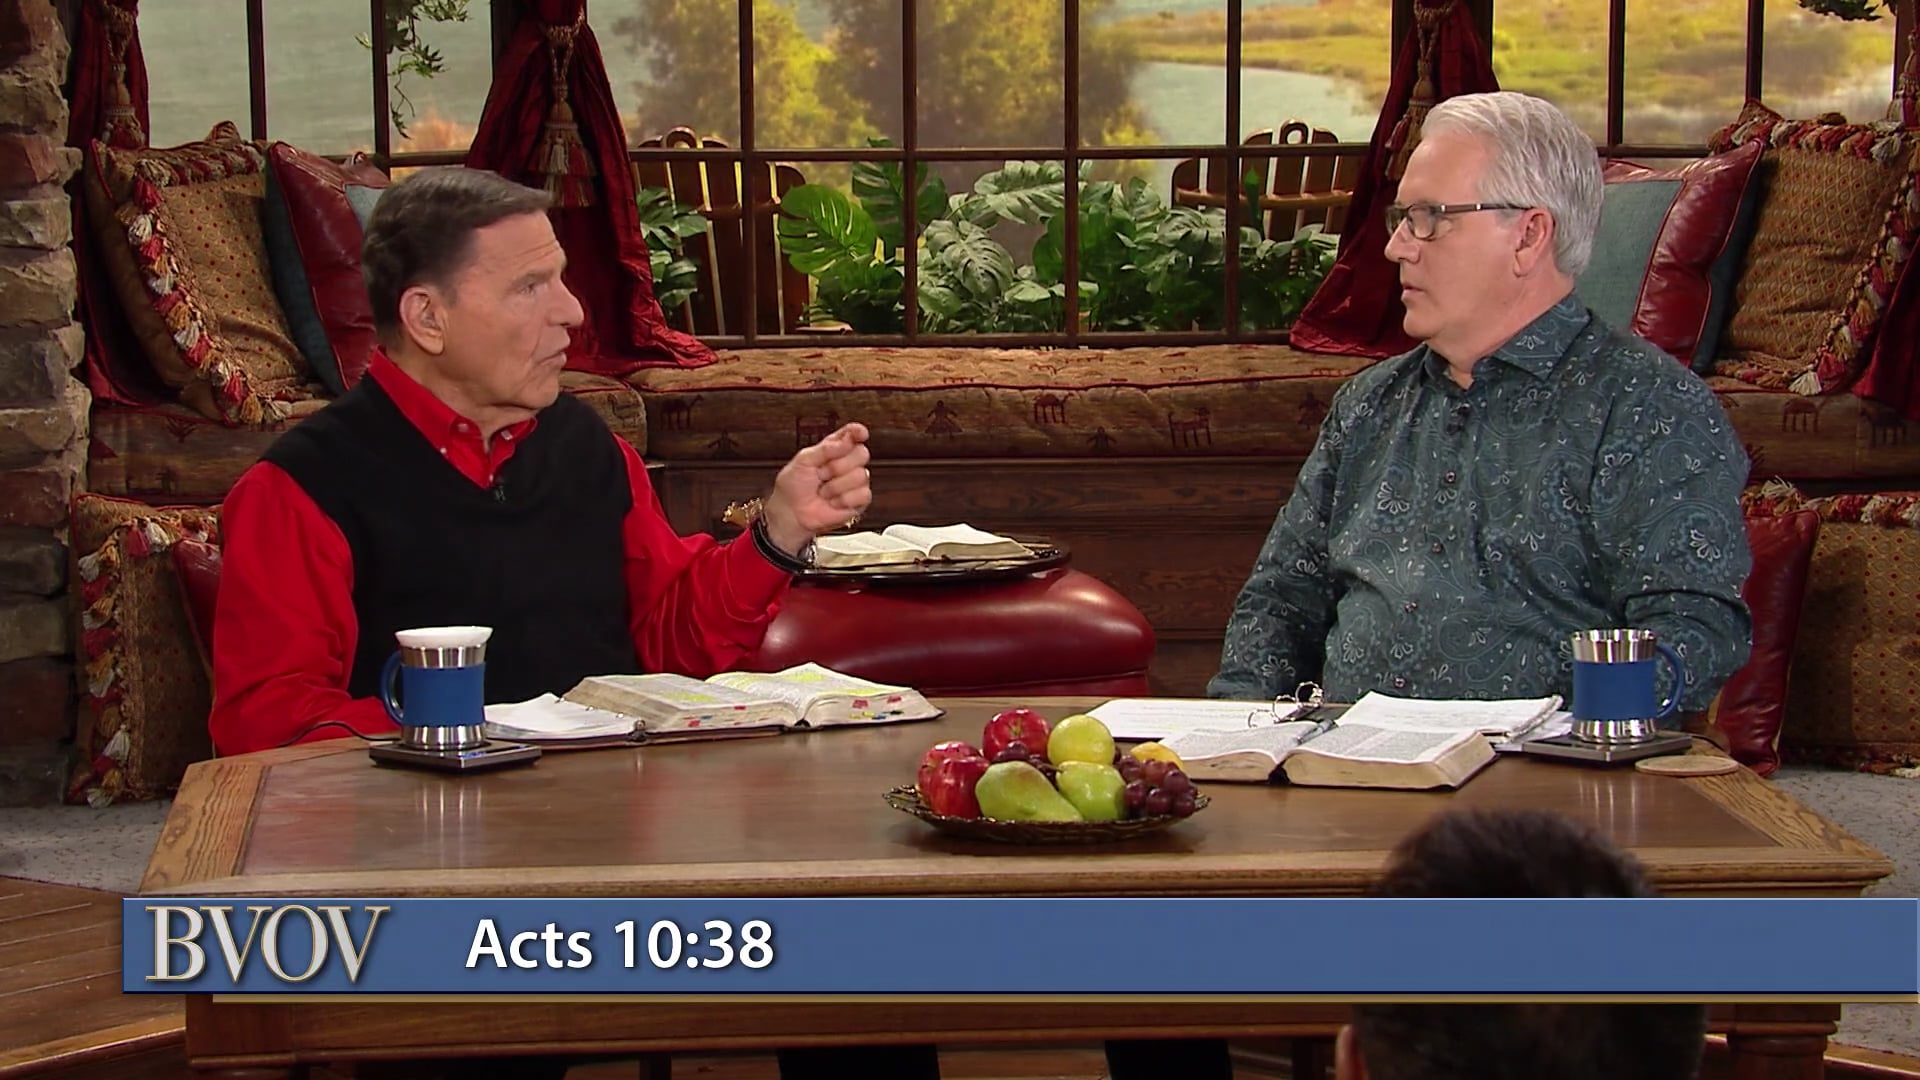 Have you turned on the power switch to your BLESSING? Join Kenneth Copeland and Professor Greg Stephens on Believer's Voice of Victory as they explain why you must speak THE BLESSING to activate it in your life. What's in your mouth when COVID-19 comes, when financial trouble comes? Be a covenant talker and see your covenant come alive!